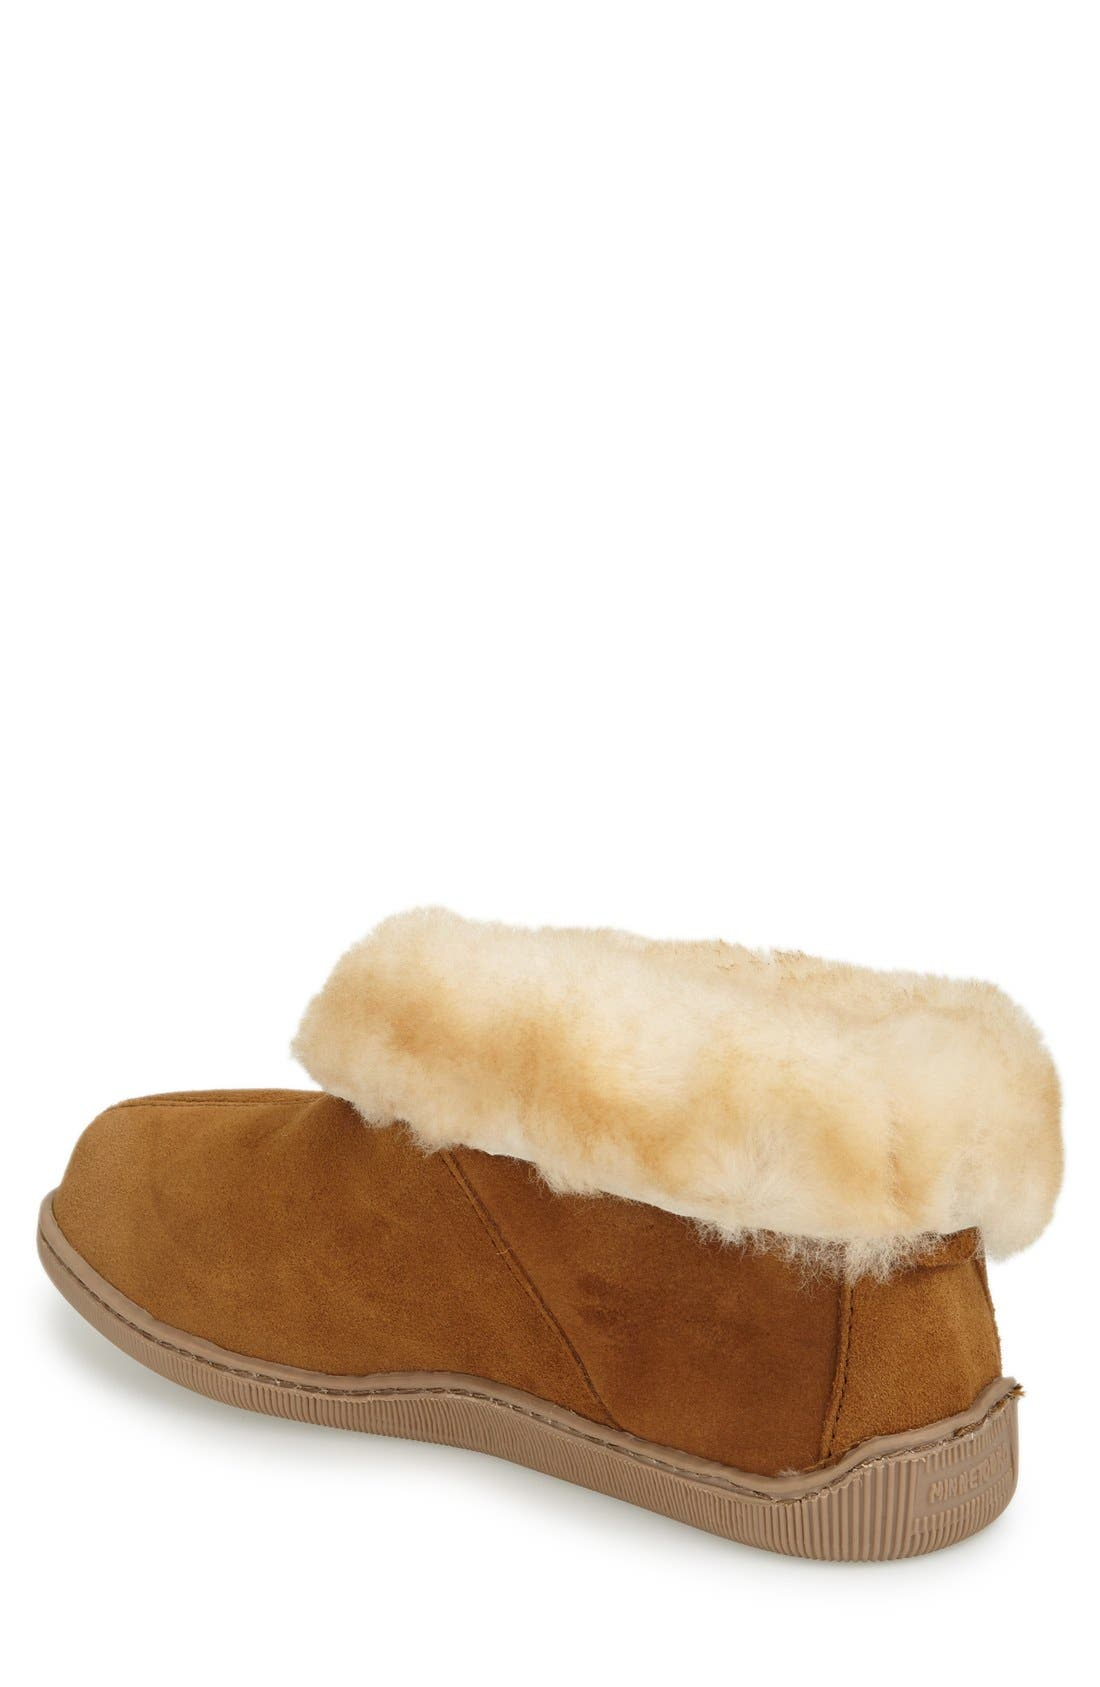 Alternate Image 2  - Minnetonka Genuine Shearling Lined Ankle Boot (Men)